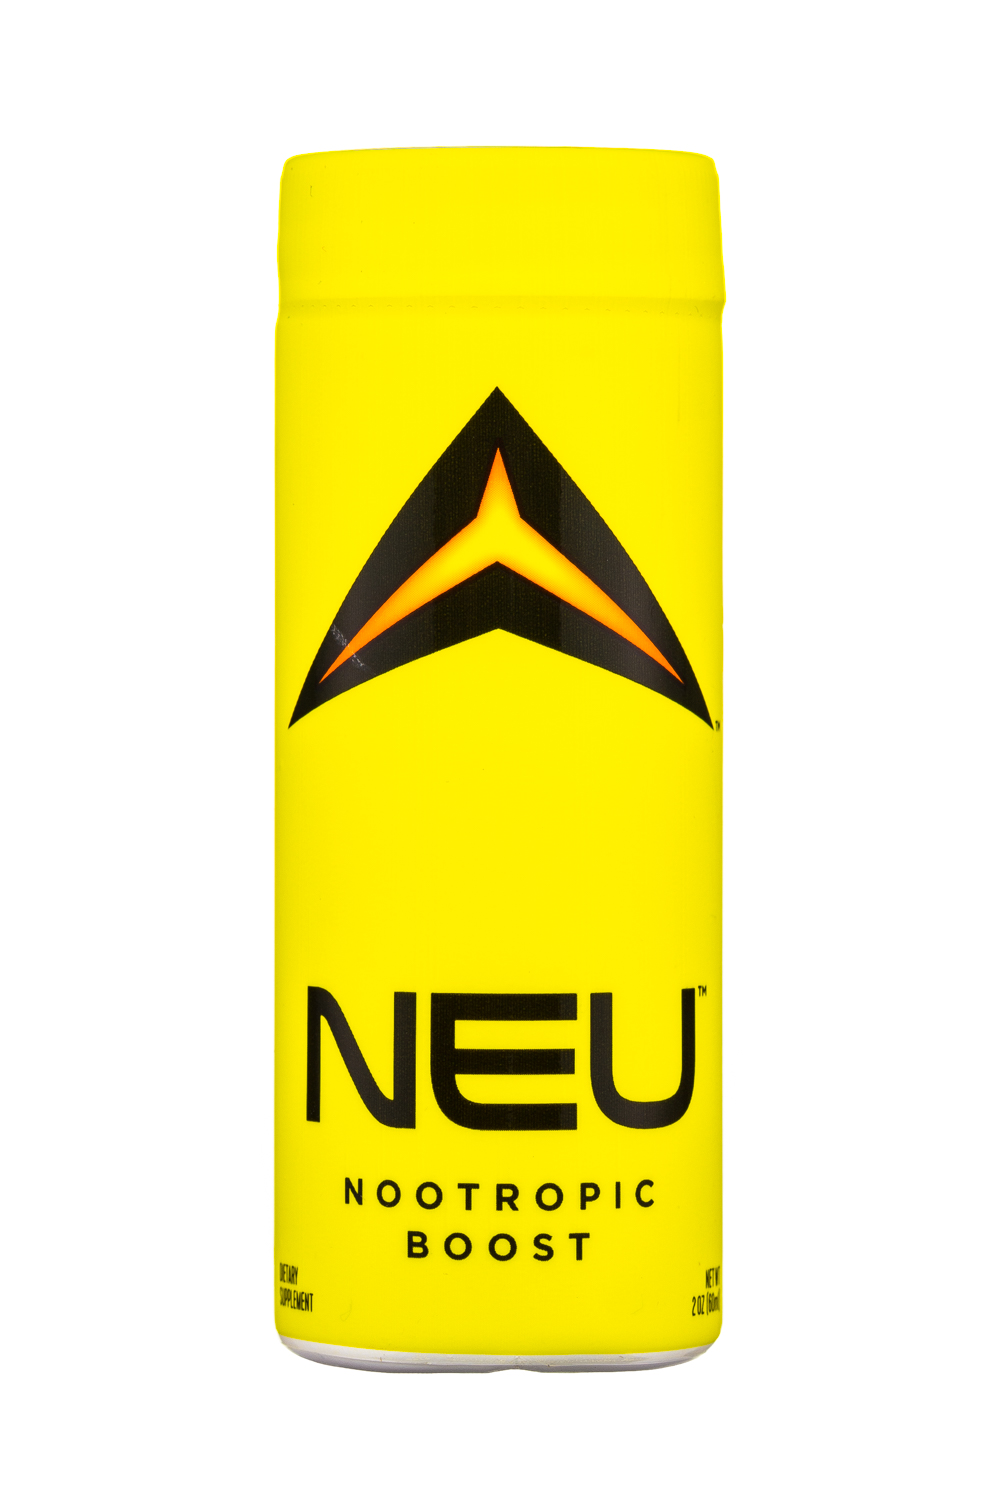 Nootropic Boost